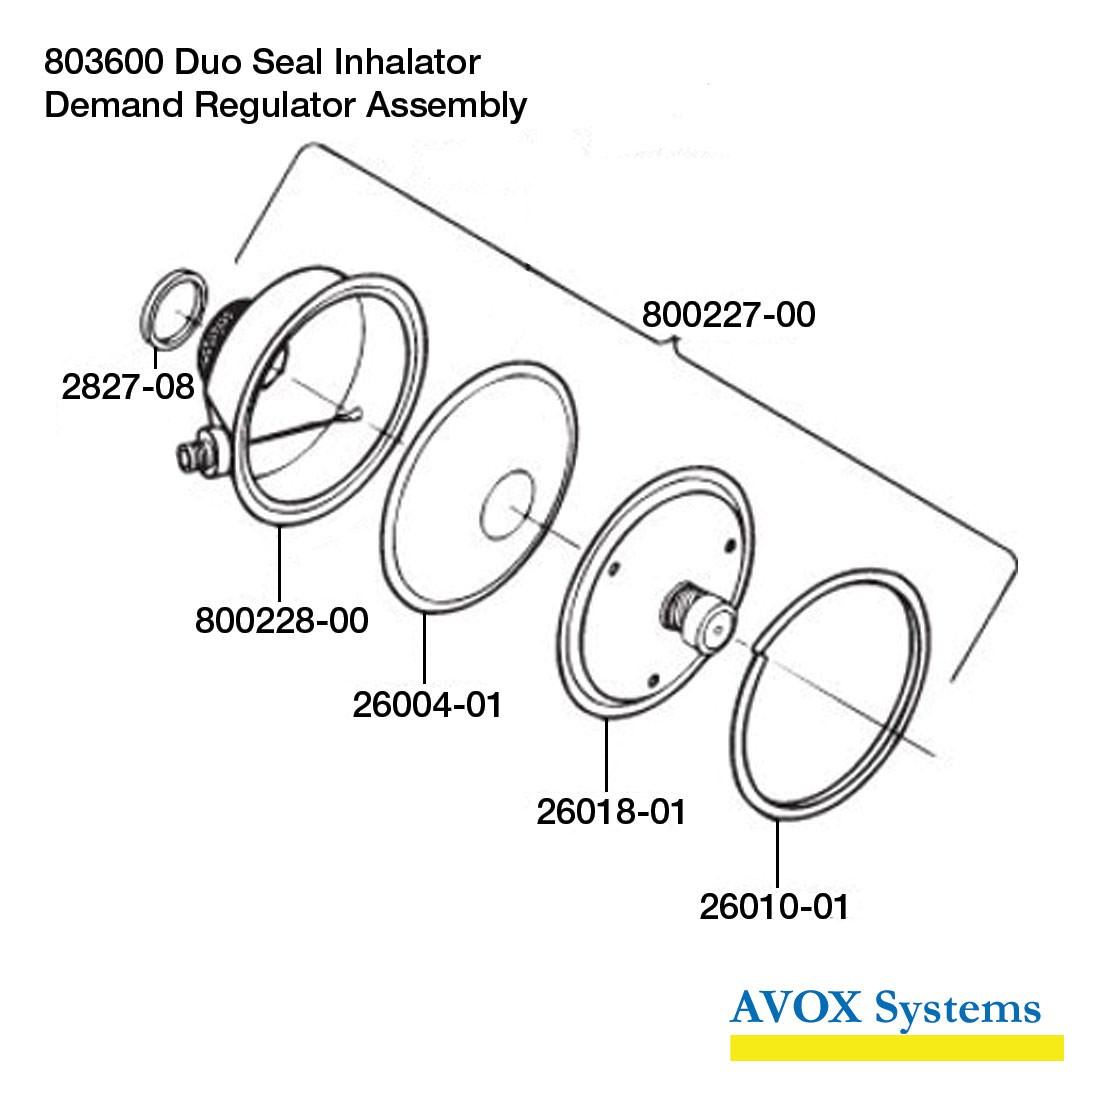 Avox 803600-03 Duo Seal Inhalator without 1st Stage Regulator without Microphone without Hose Assembly - Side - Demand Regulator Assembly